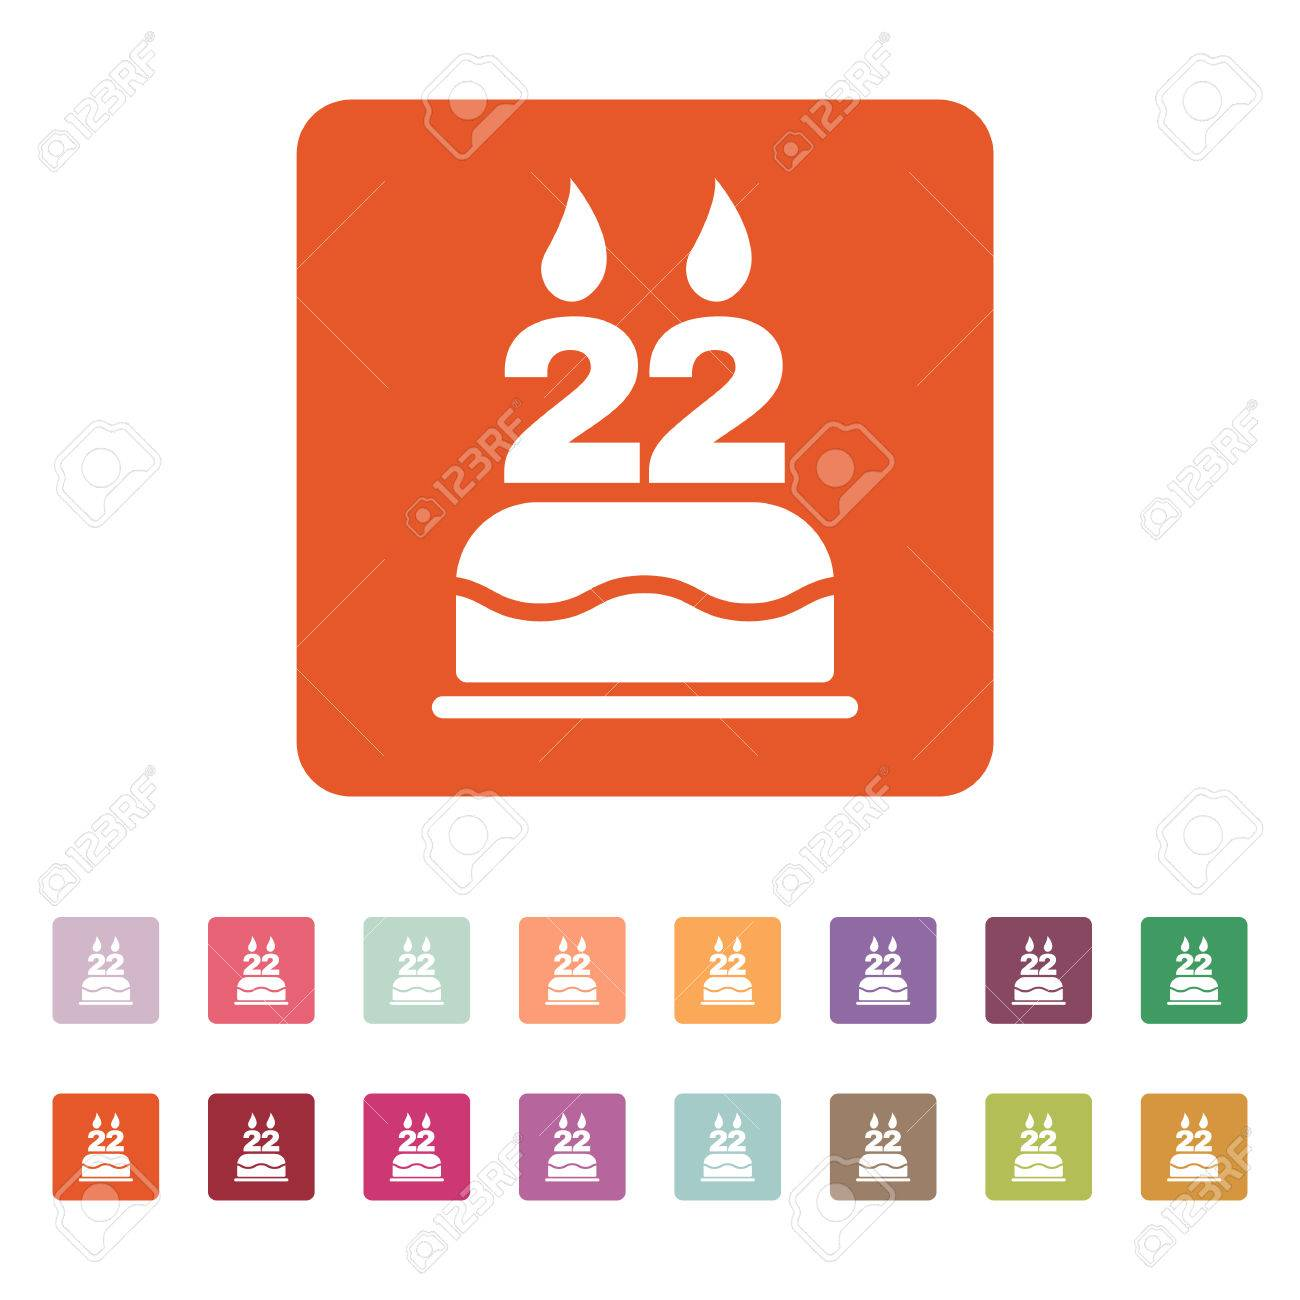 The Birthday Cake With Candles In The Form Of Number 22 Icon